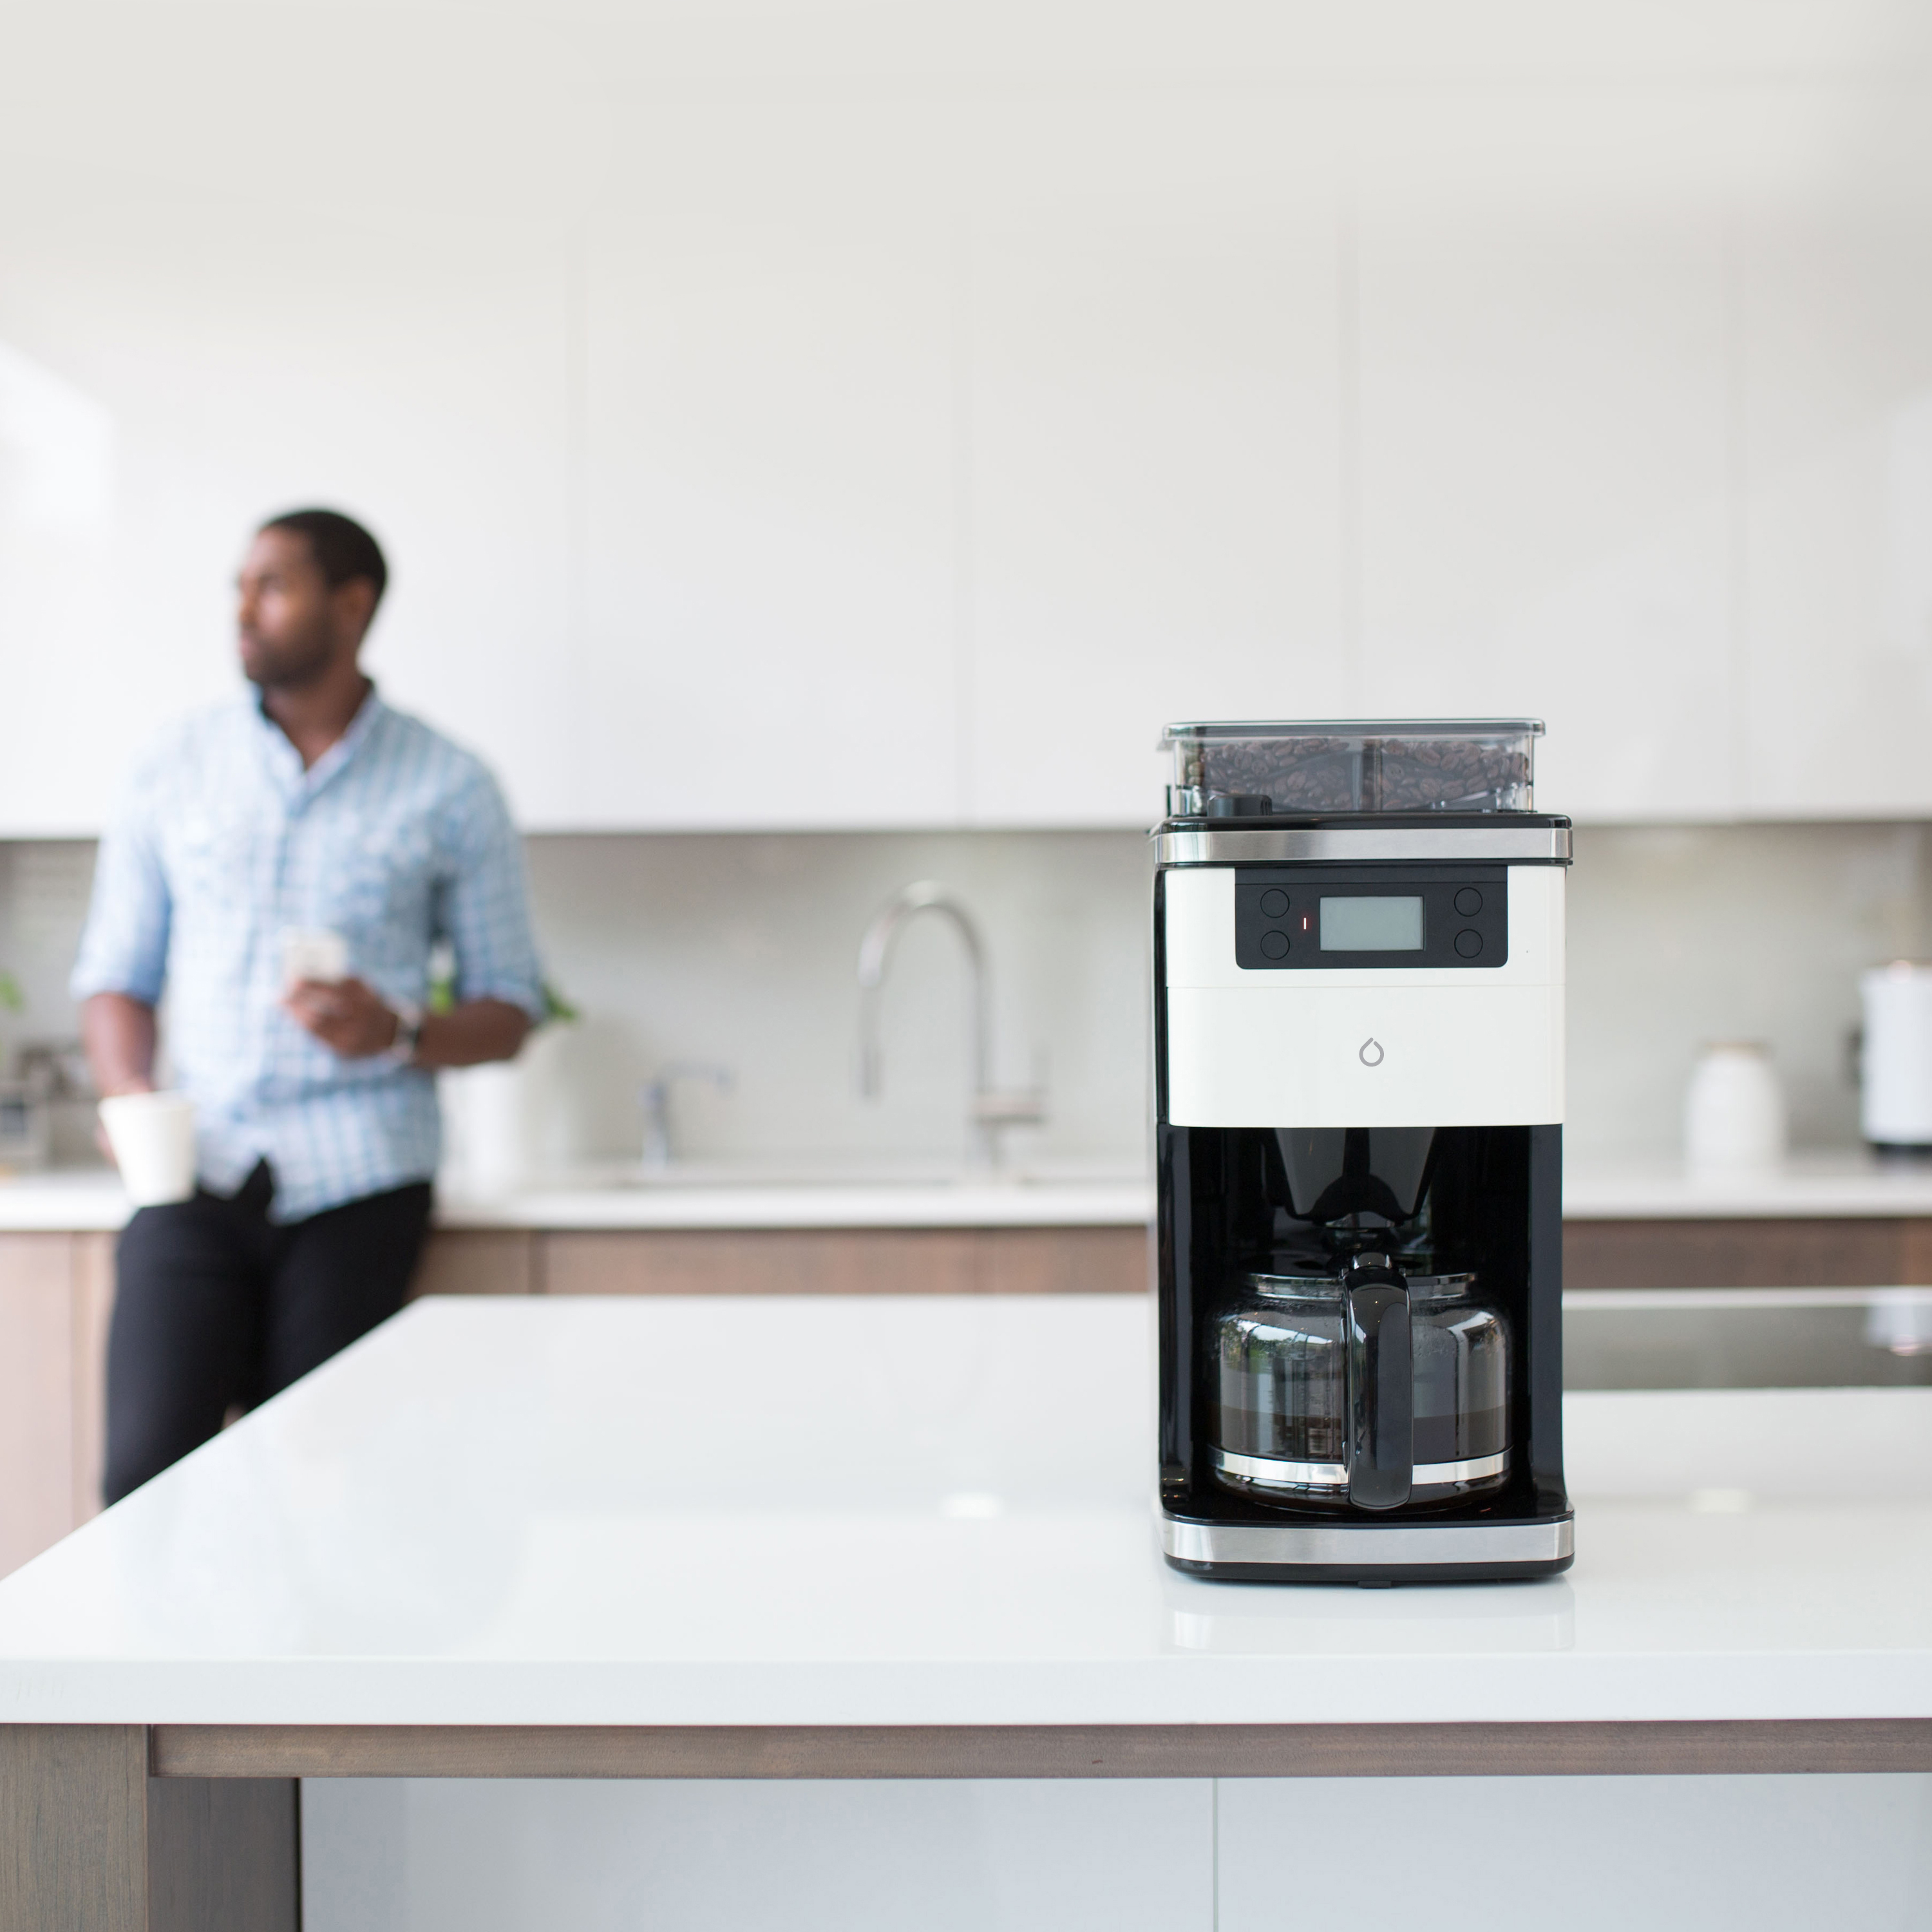 Make Coffee From Bed With This Smart Coffee Machine